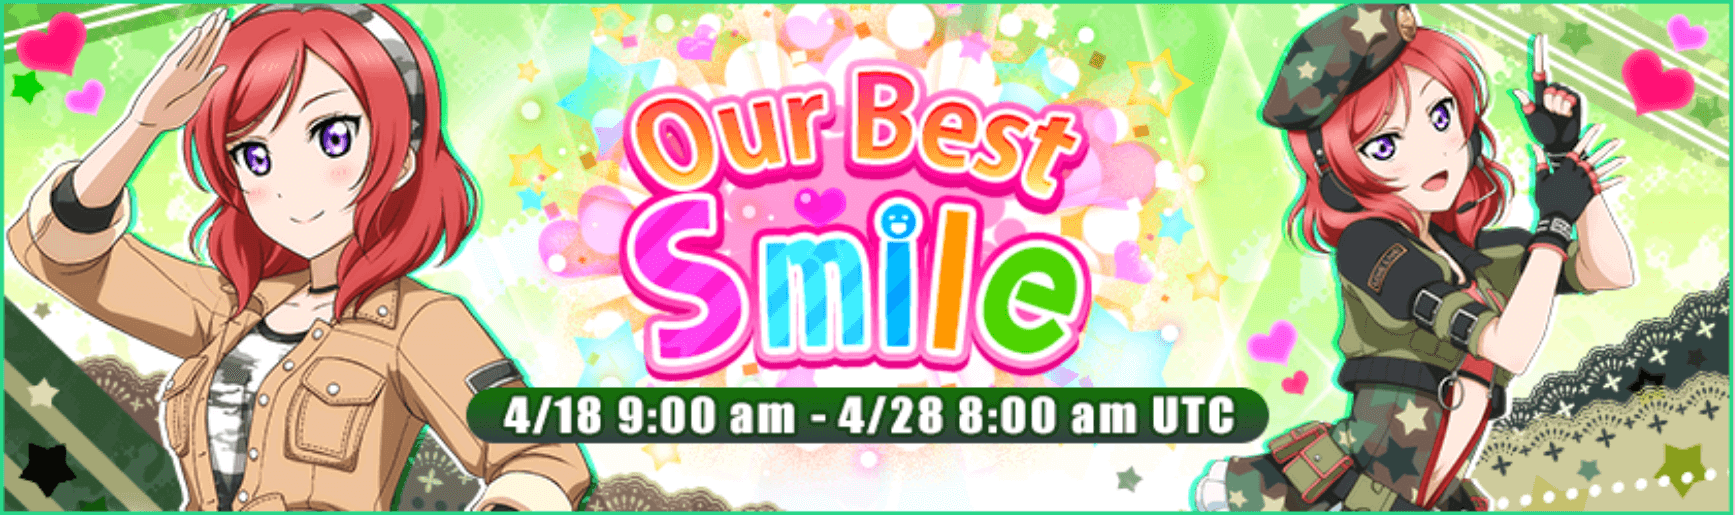 Our Best Smile